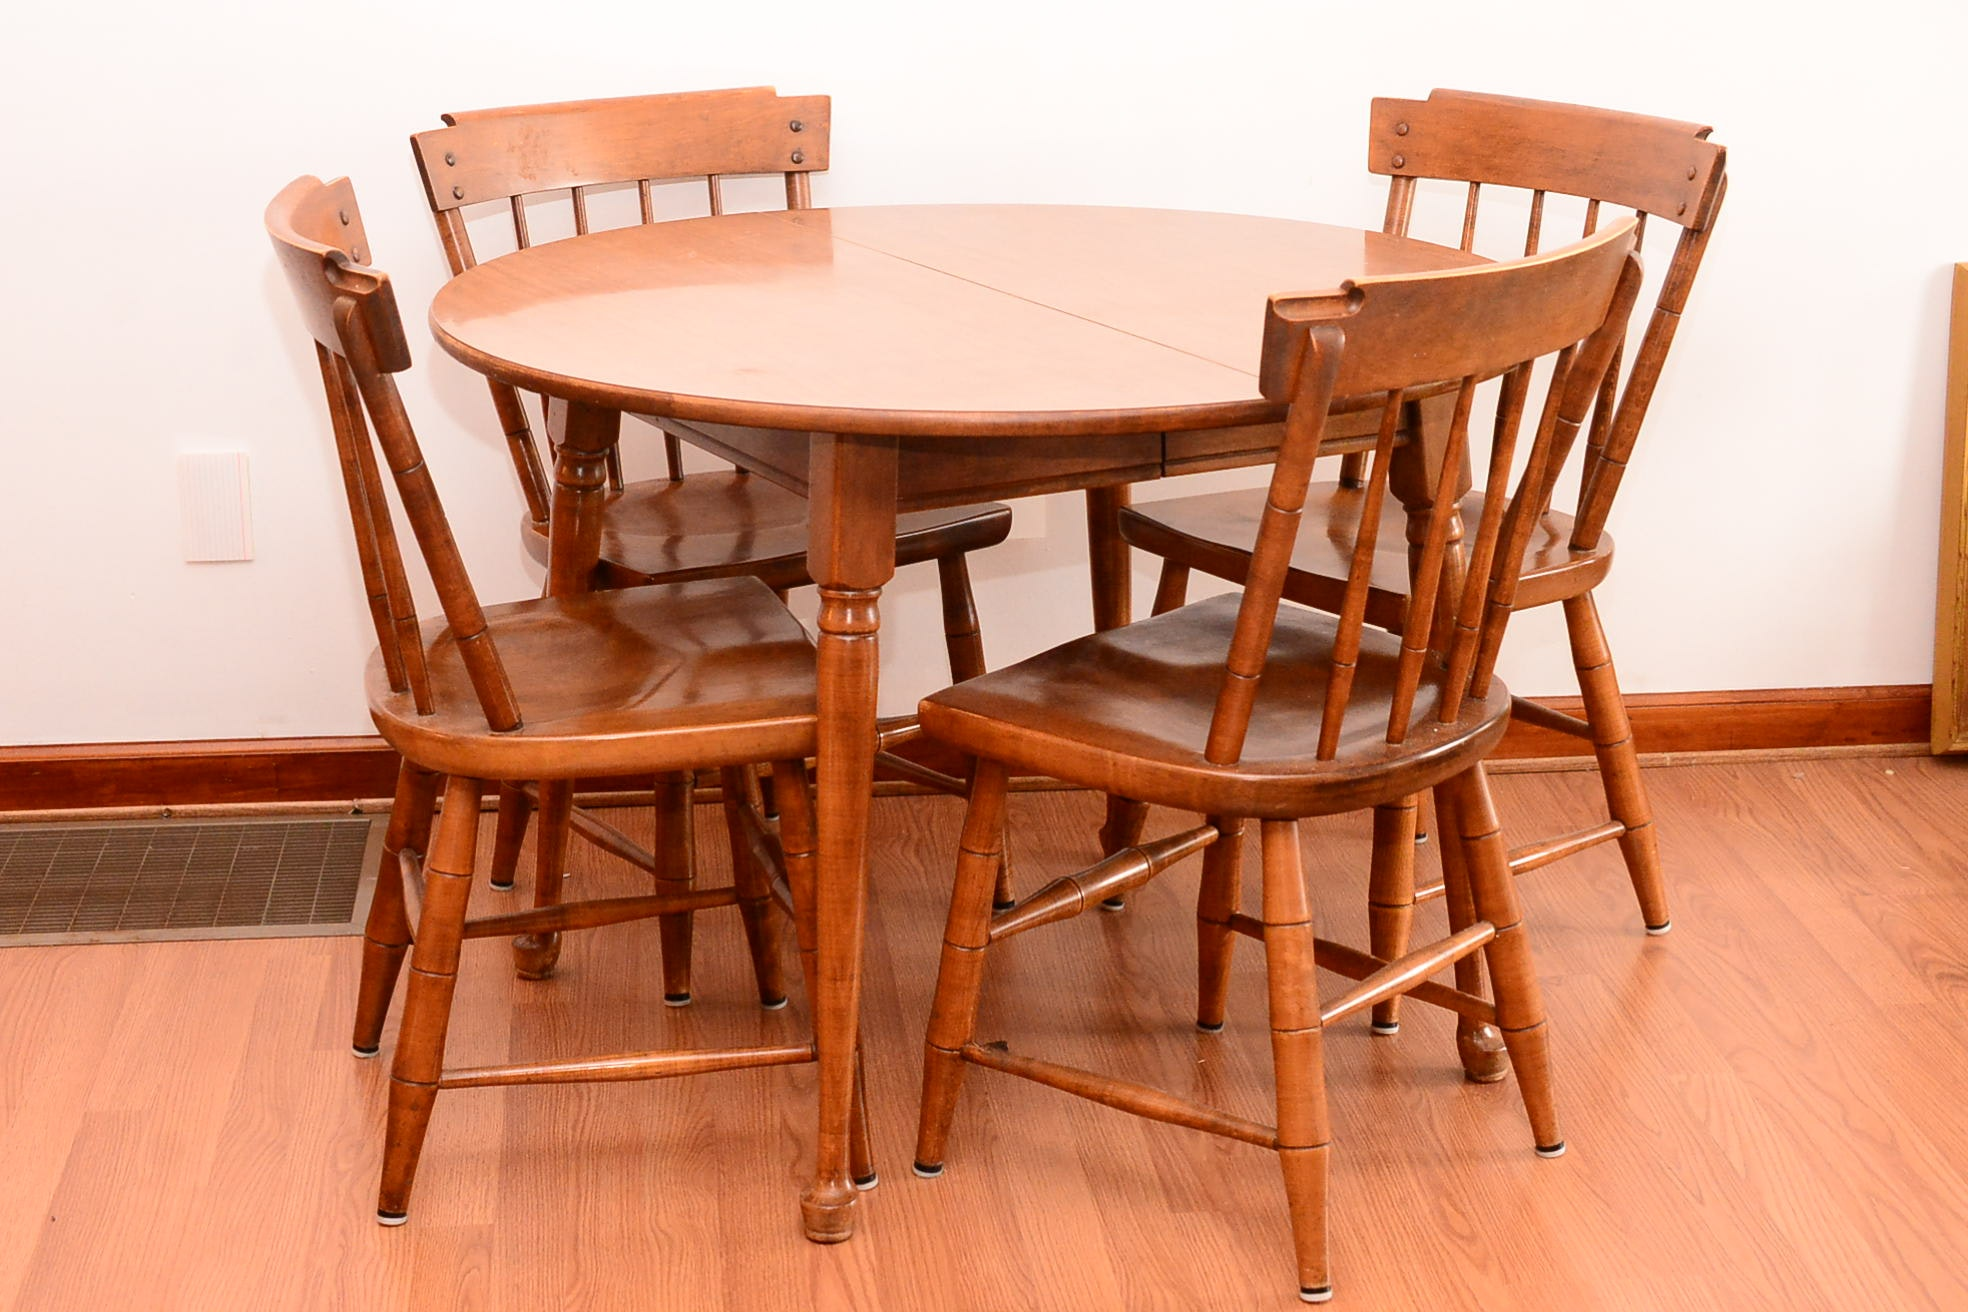 Maple Kitchen Table With Chair And Bench Ebth: Heywood-Wakefield Kitchen Table And Four Chairs : EBTH